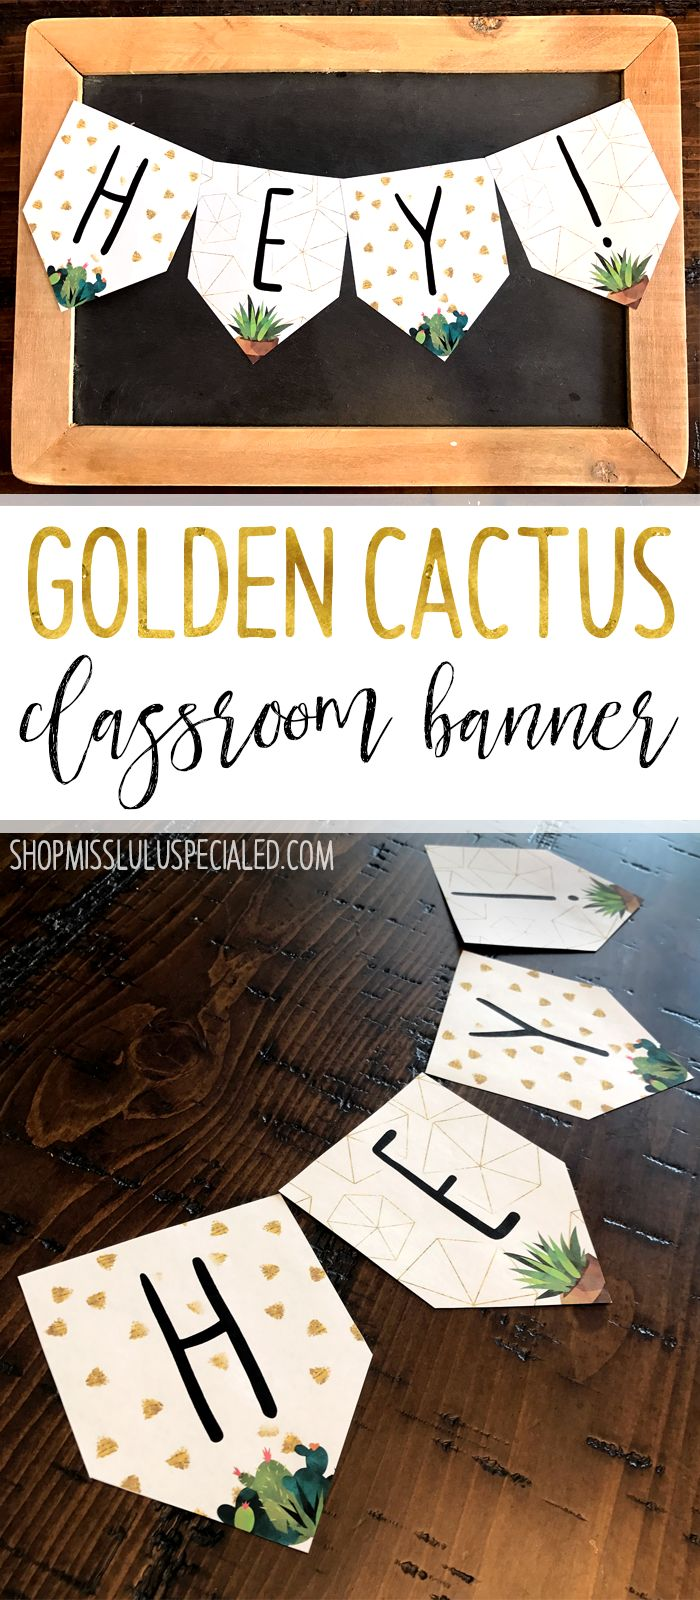 Classroom Decoration Cactus ~ Best ideas about classroom banner on pinterest